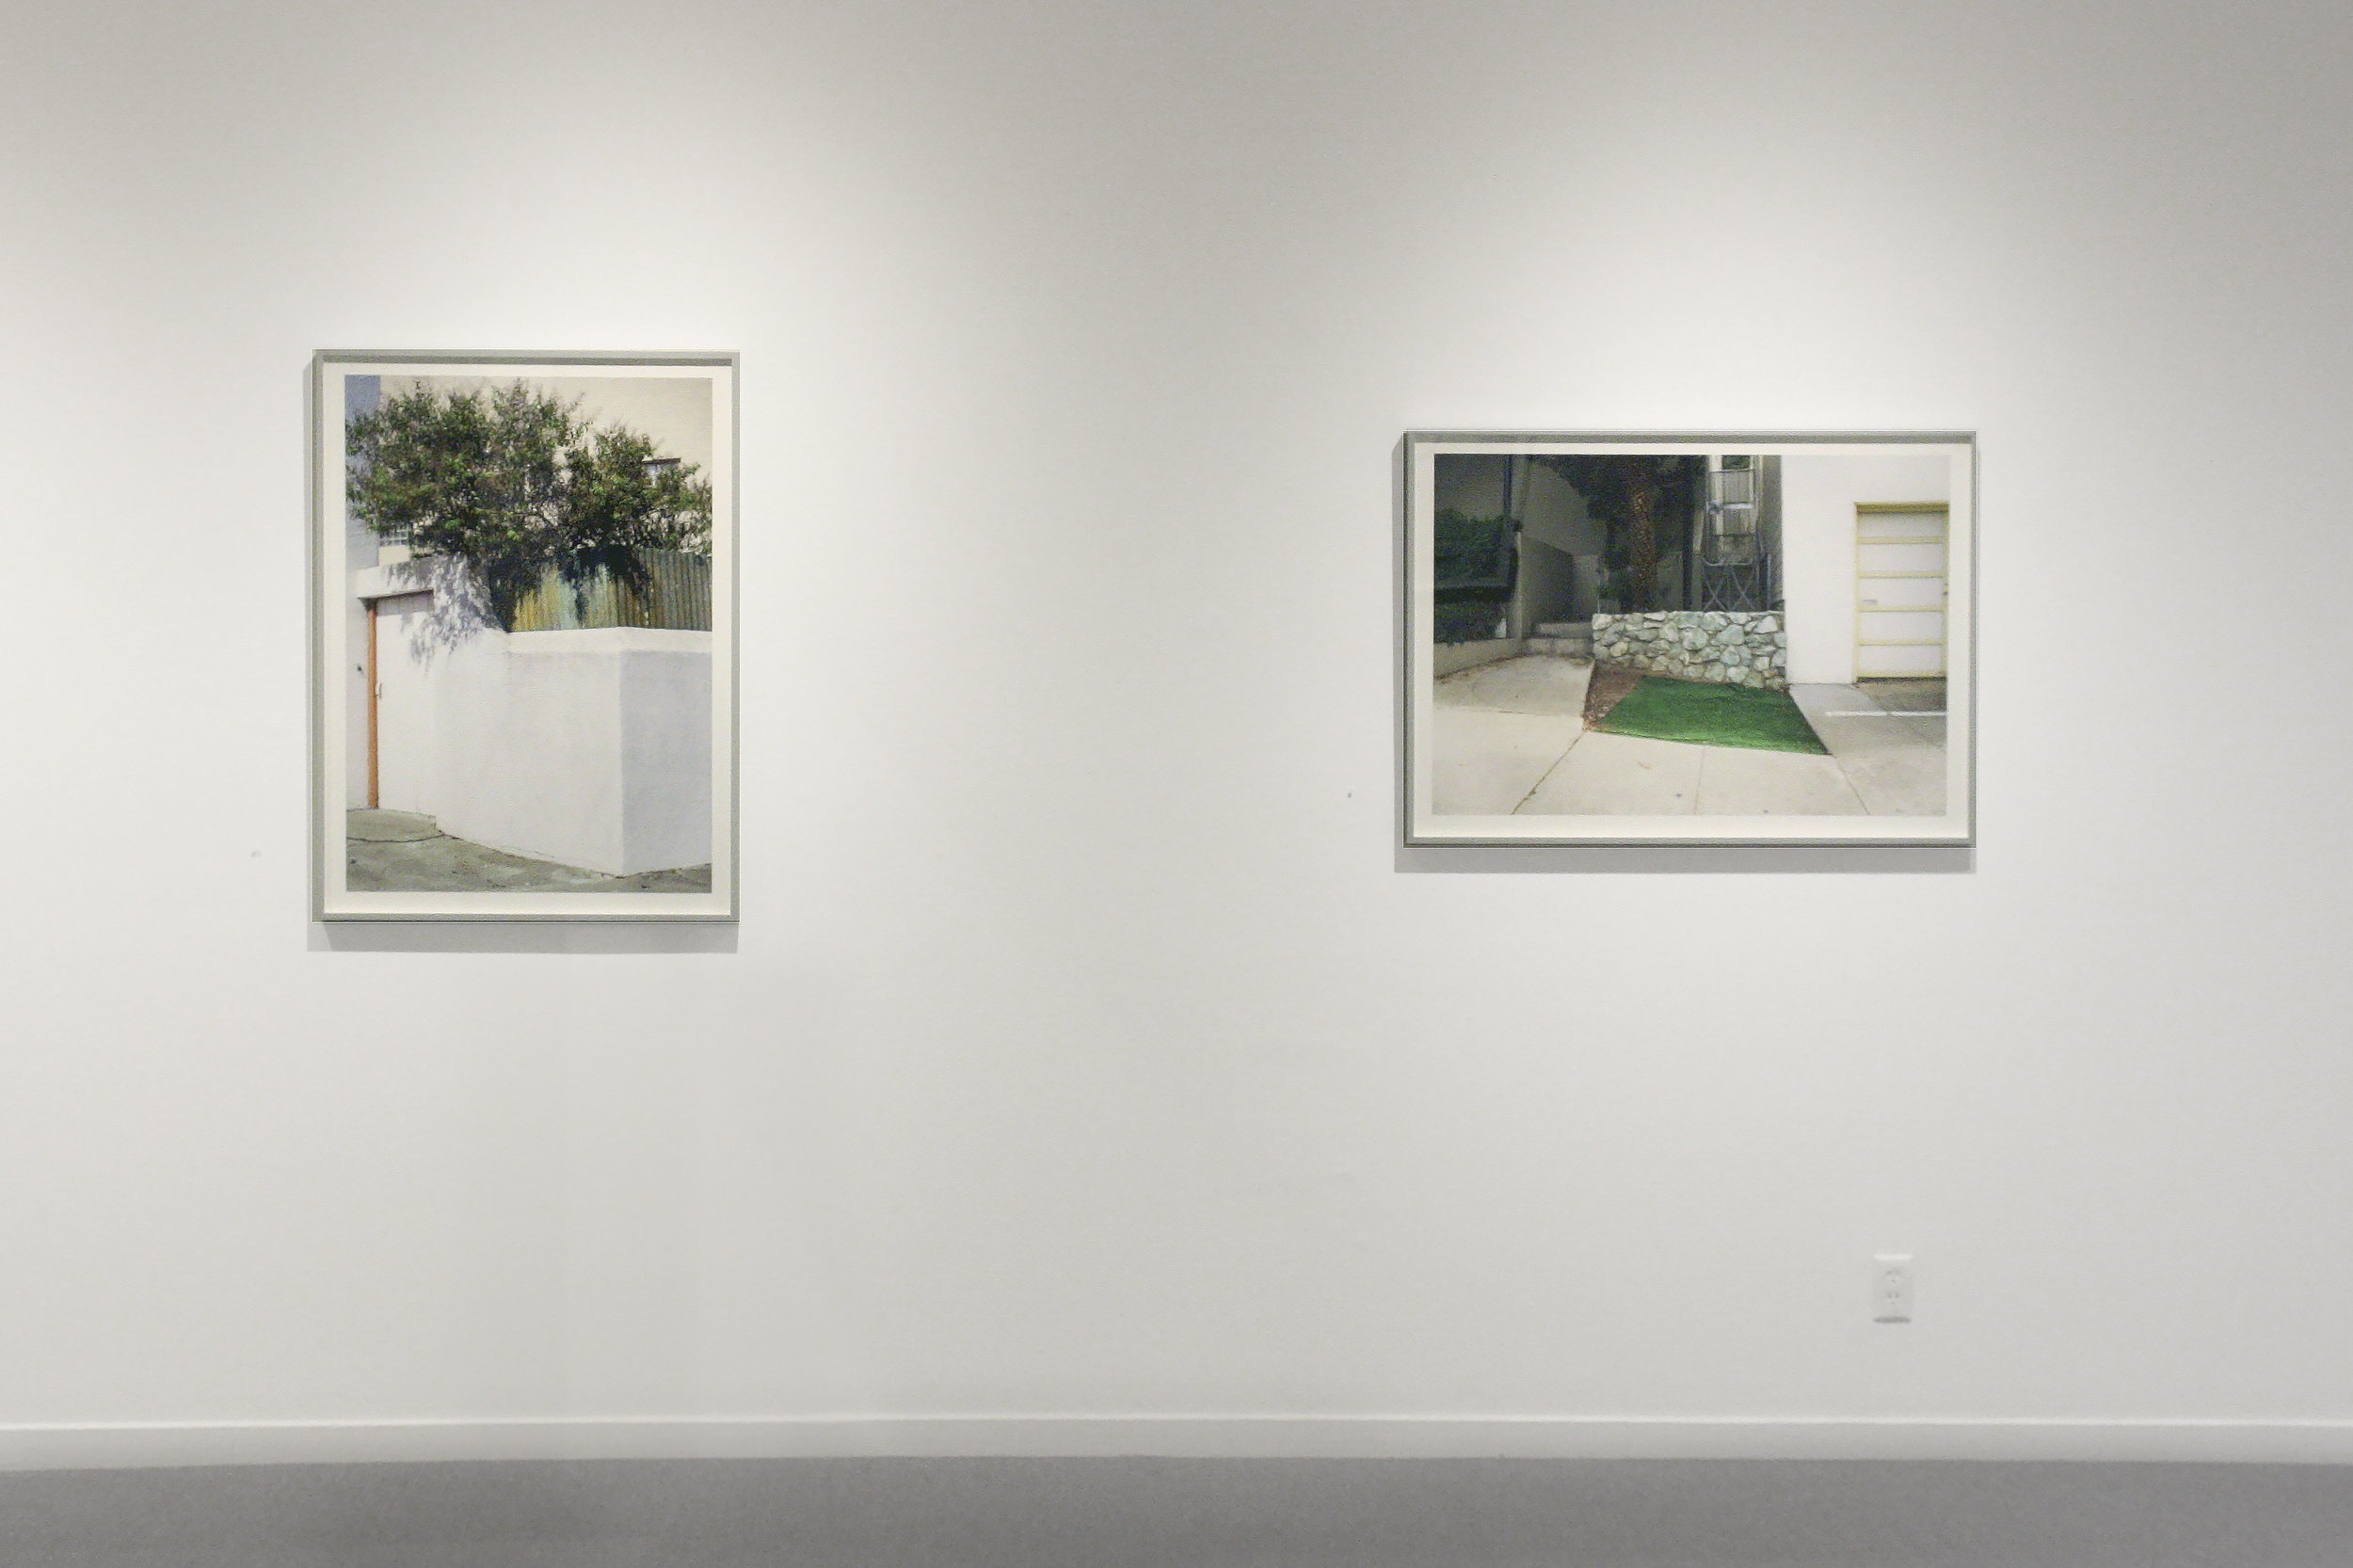 Installation View, Nurture 2015